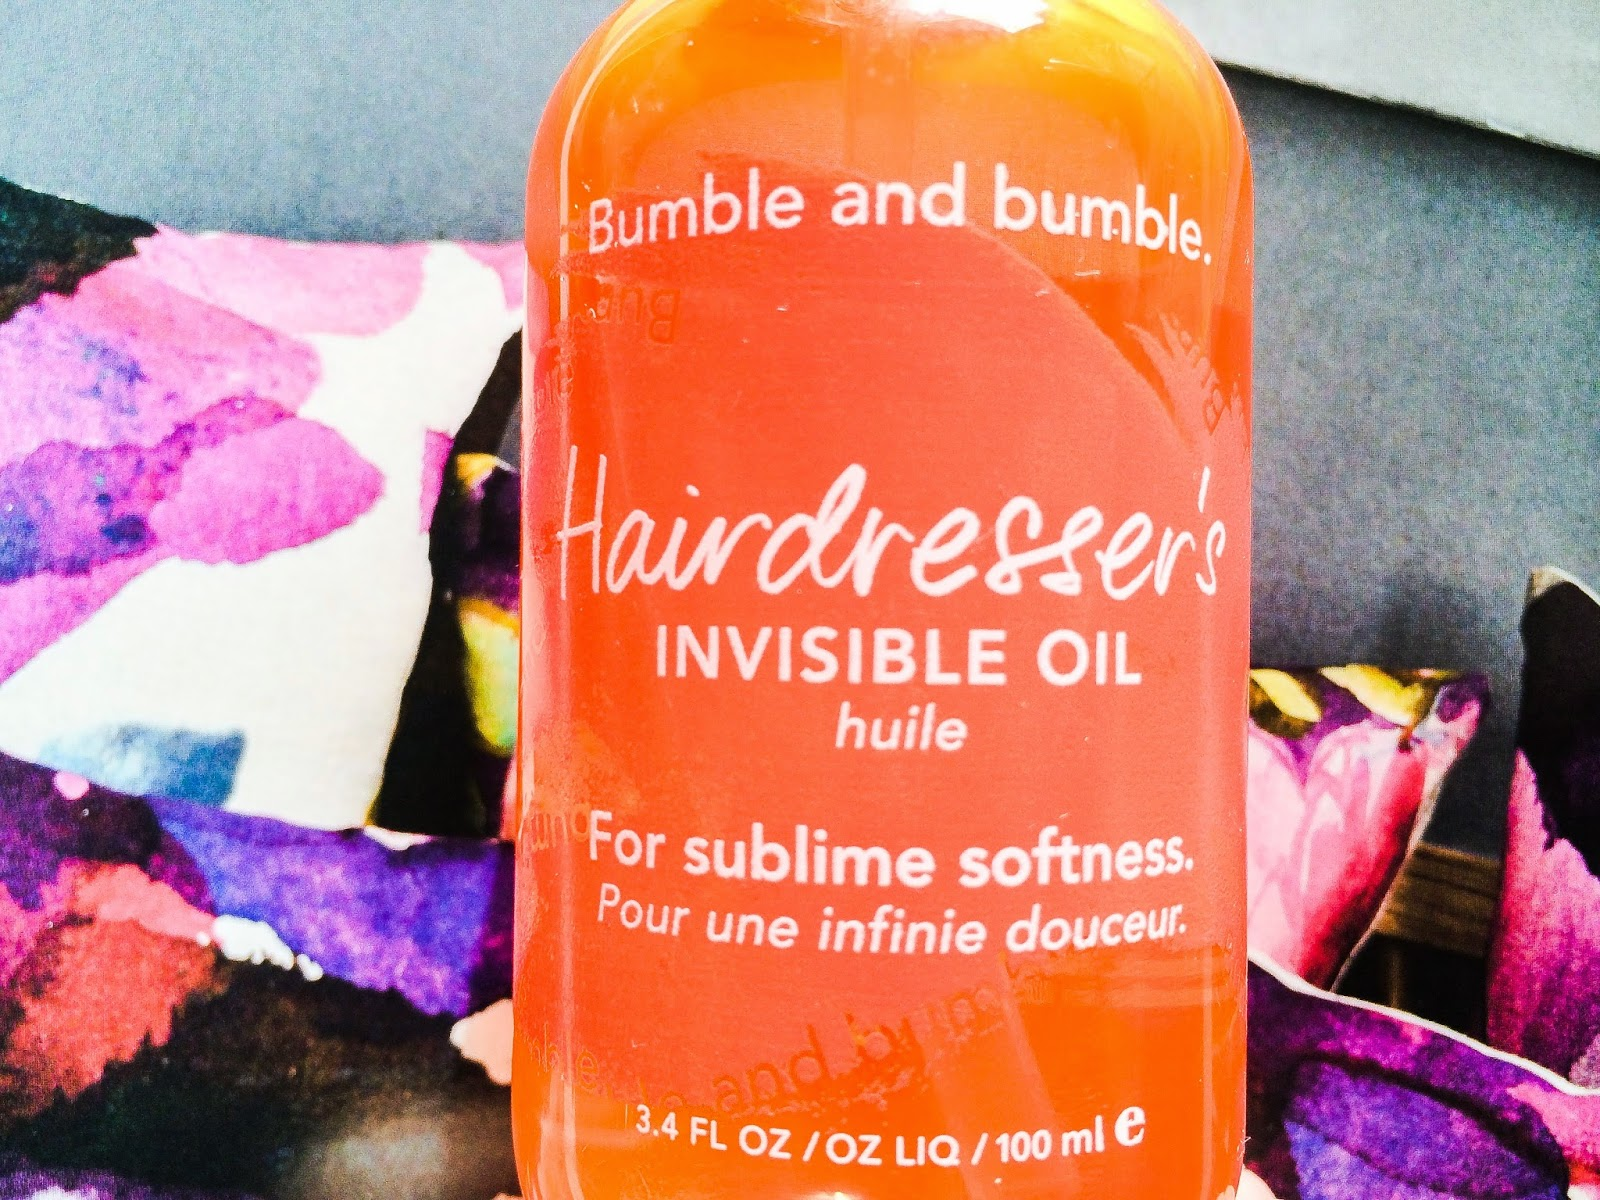 Bumble and Bumble Hairdresser's Invisible Oil Review